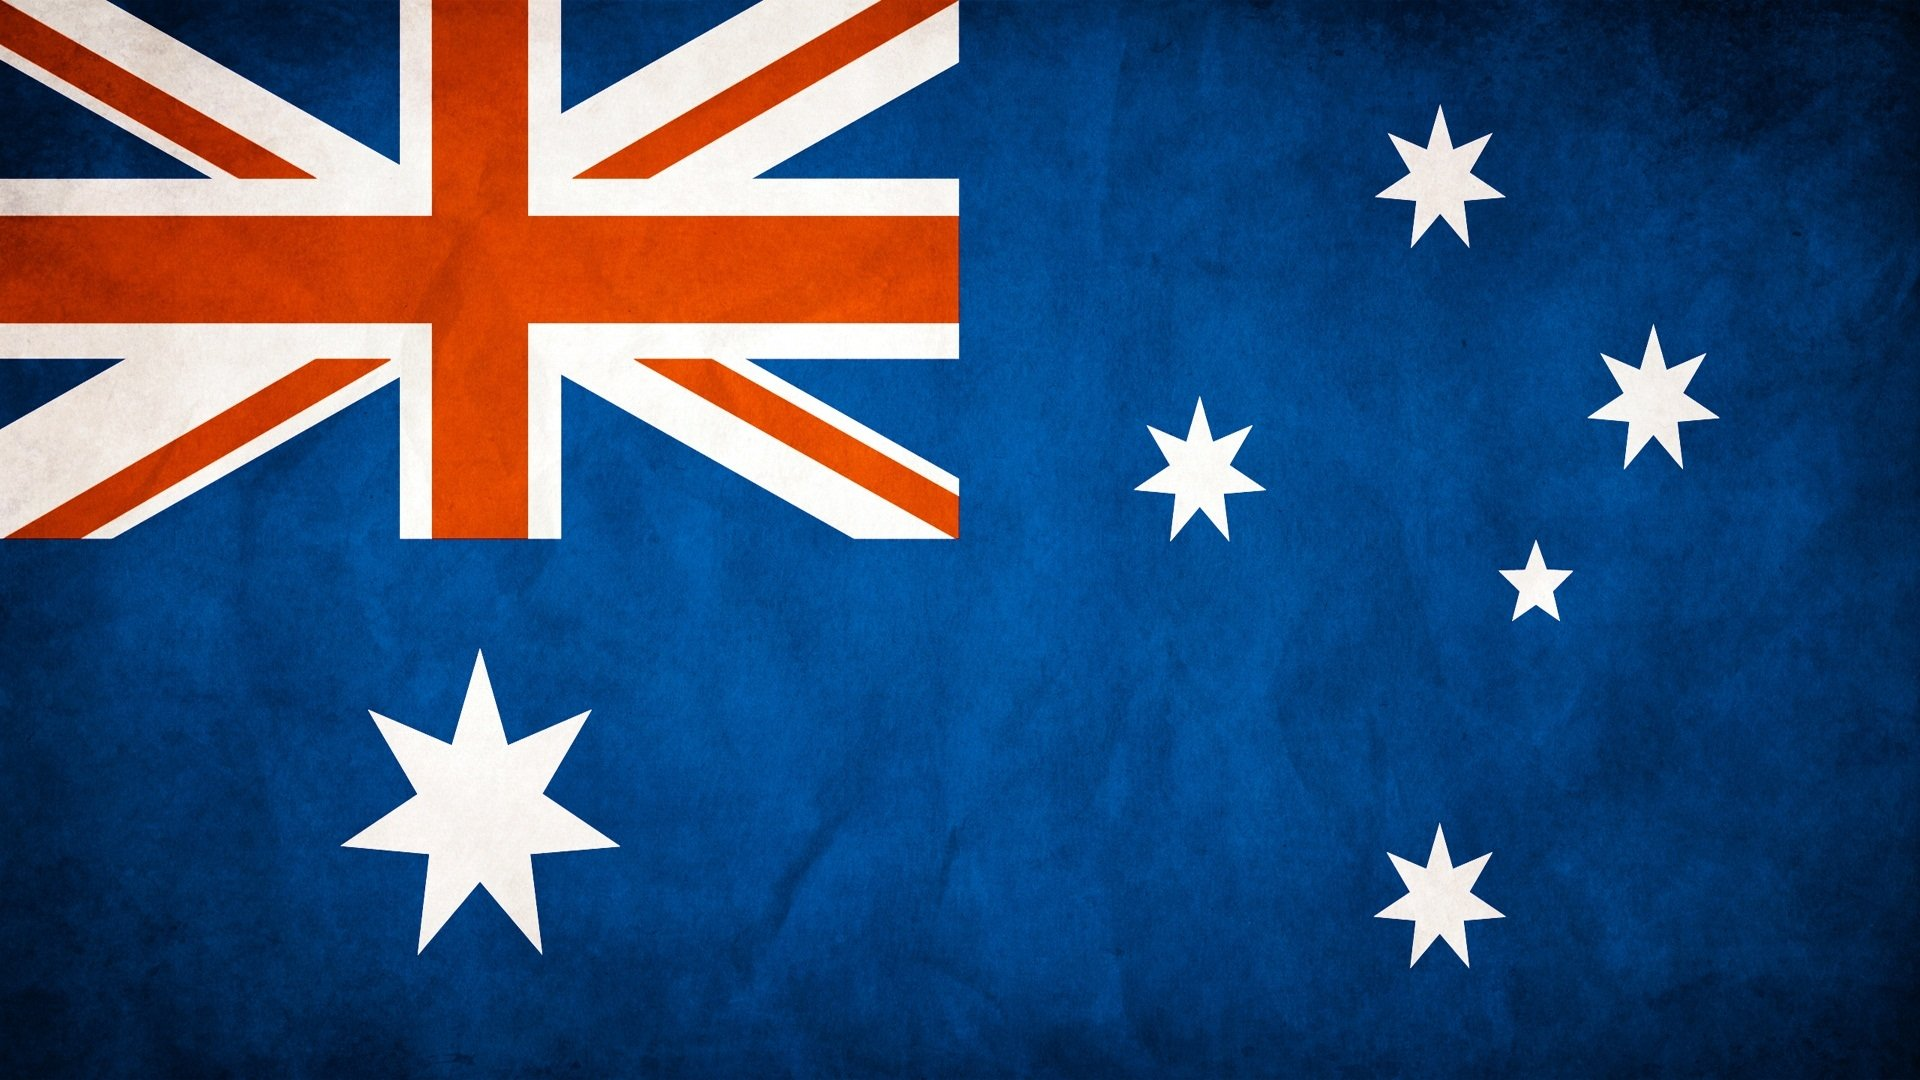 Flag Of Australia HD Wallpaper Background Image 1920x1080 ID 1920x1080